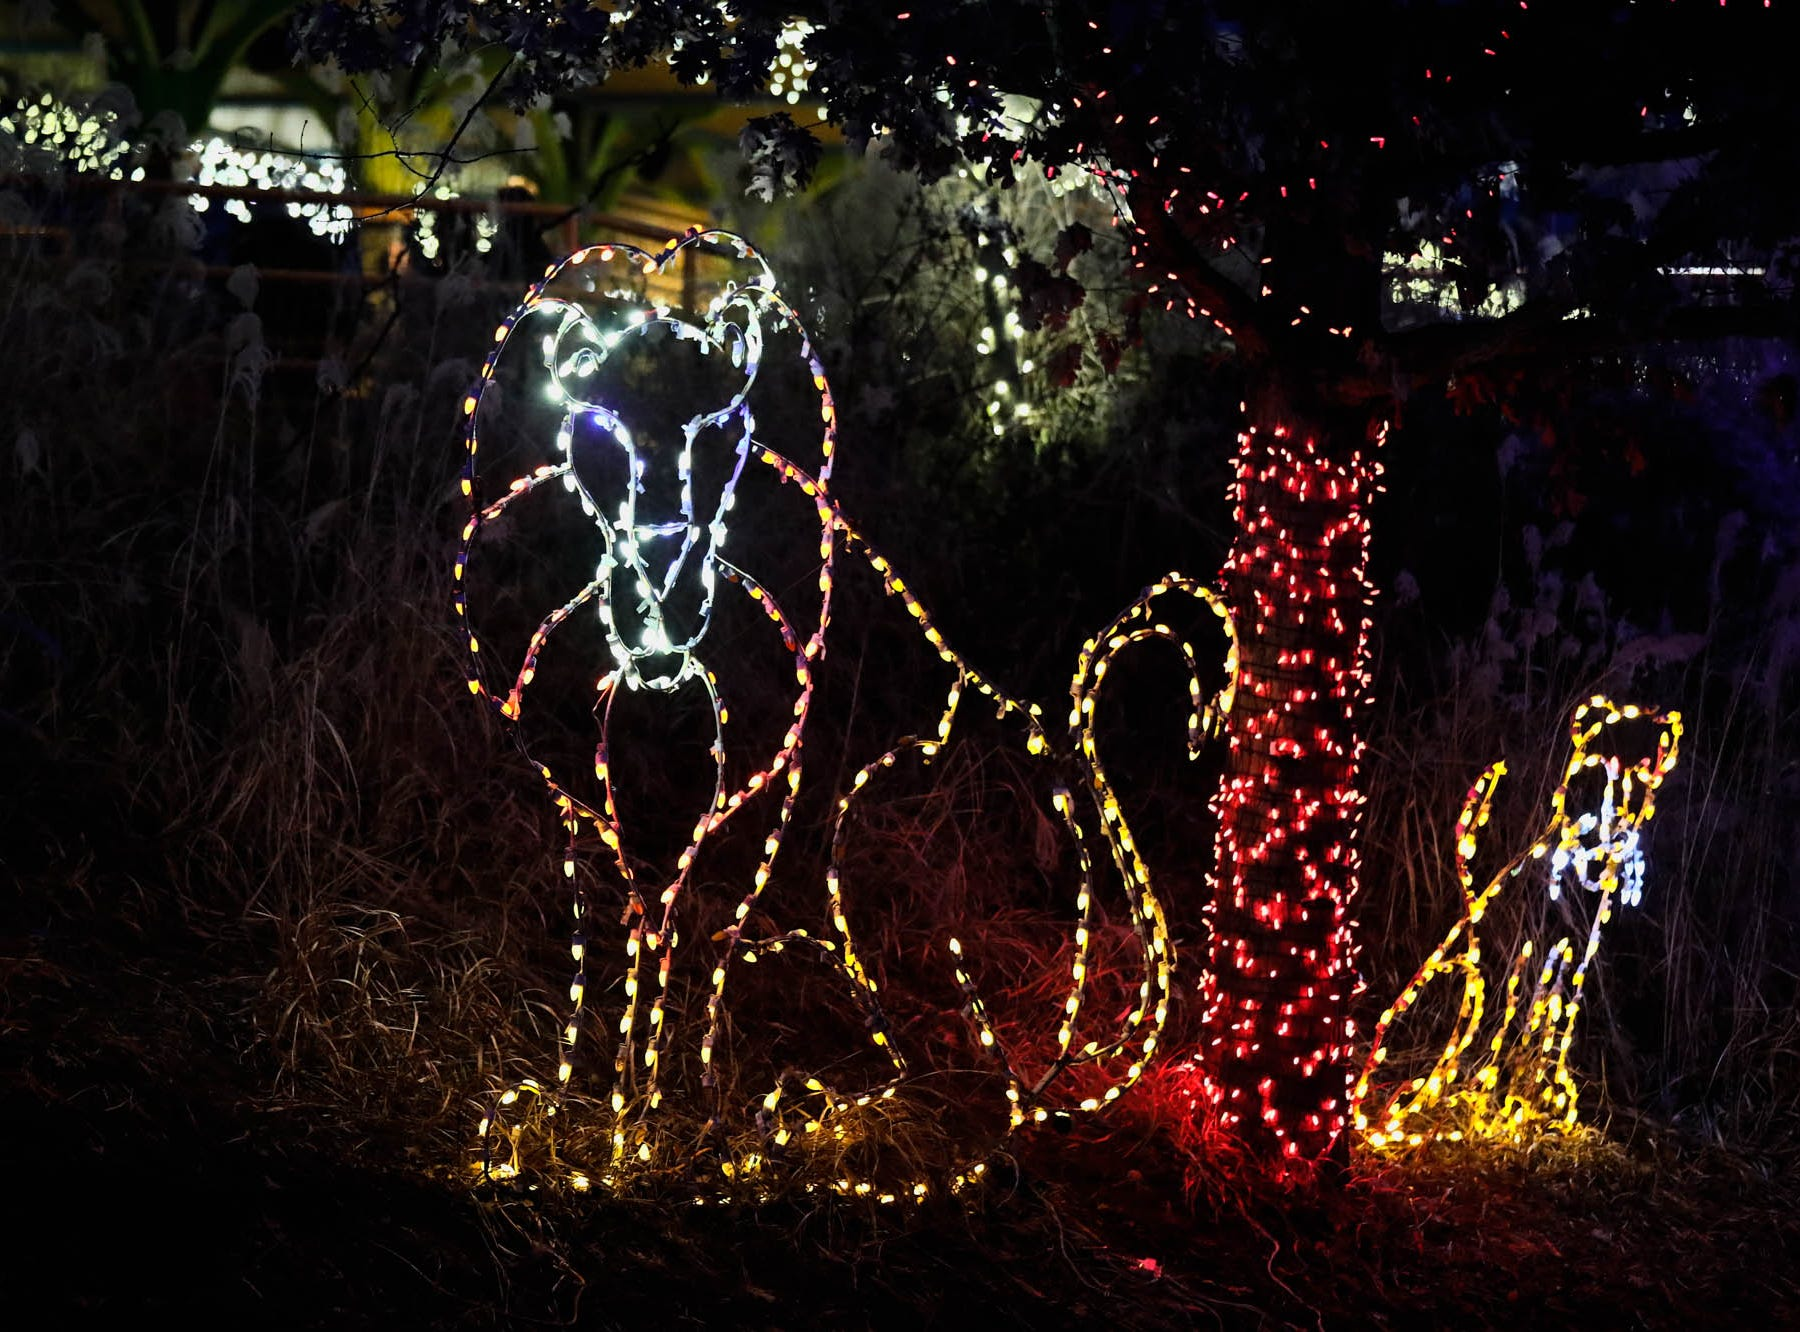 A lion and cheetah glow during Christmas at the Indianapolis Zoo on Wednesday, Dec. 19, 2018.